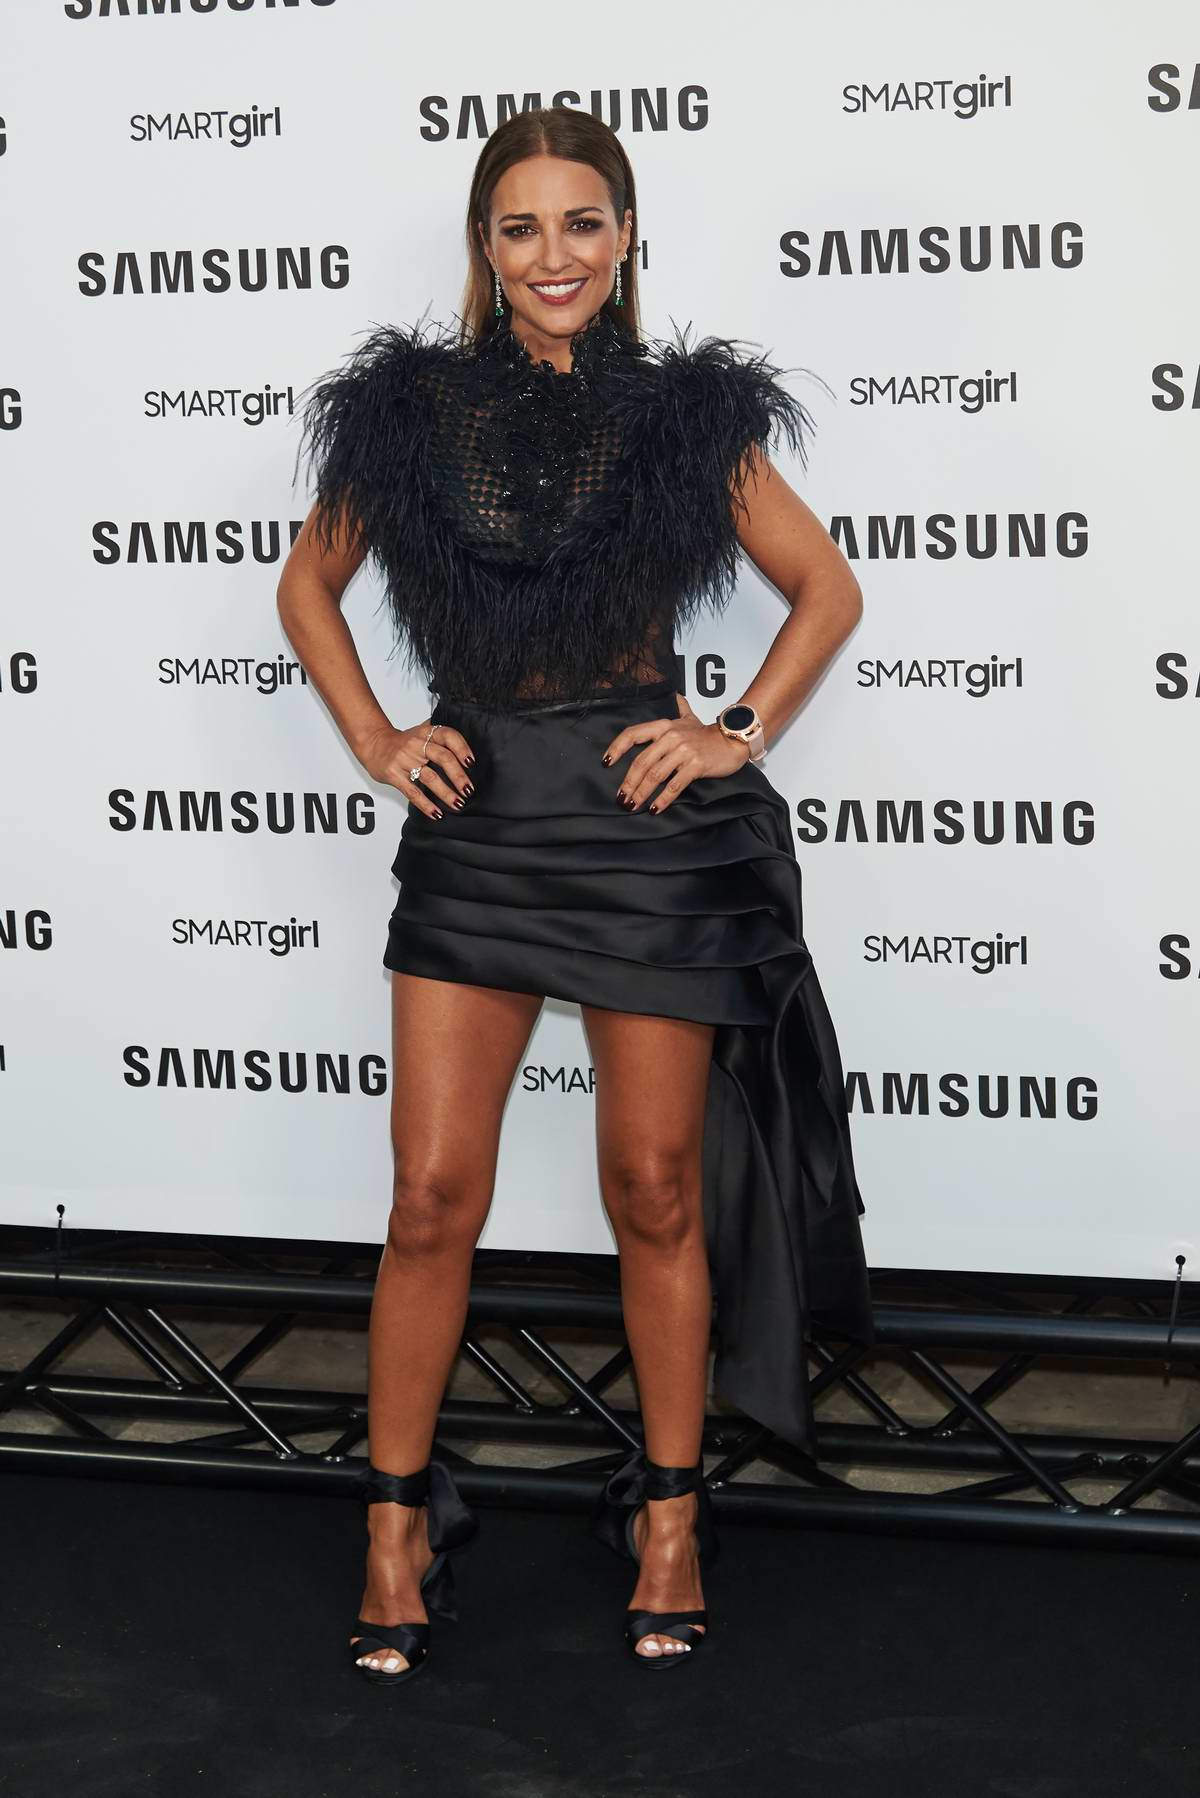 Paula Echevarria attends Samsung Galaxy Watch presentation photocall at Palacio de Saldana in Madrid, Spain